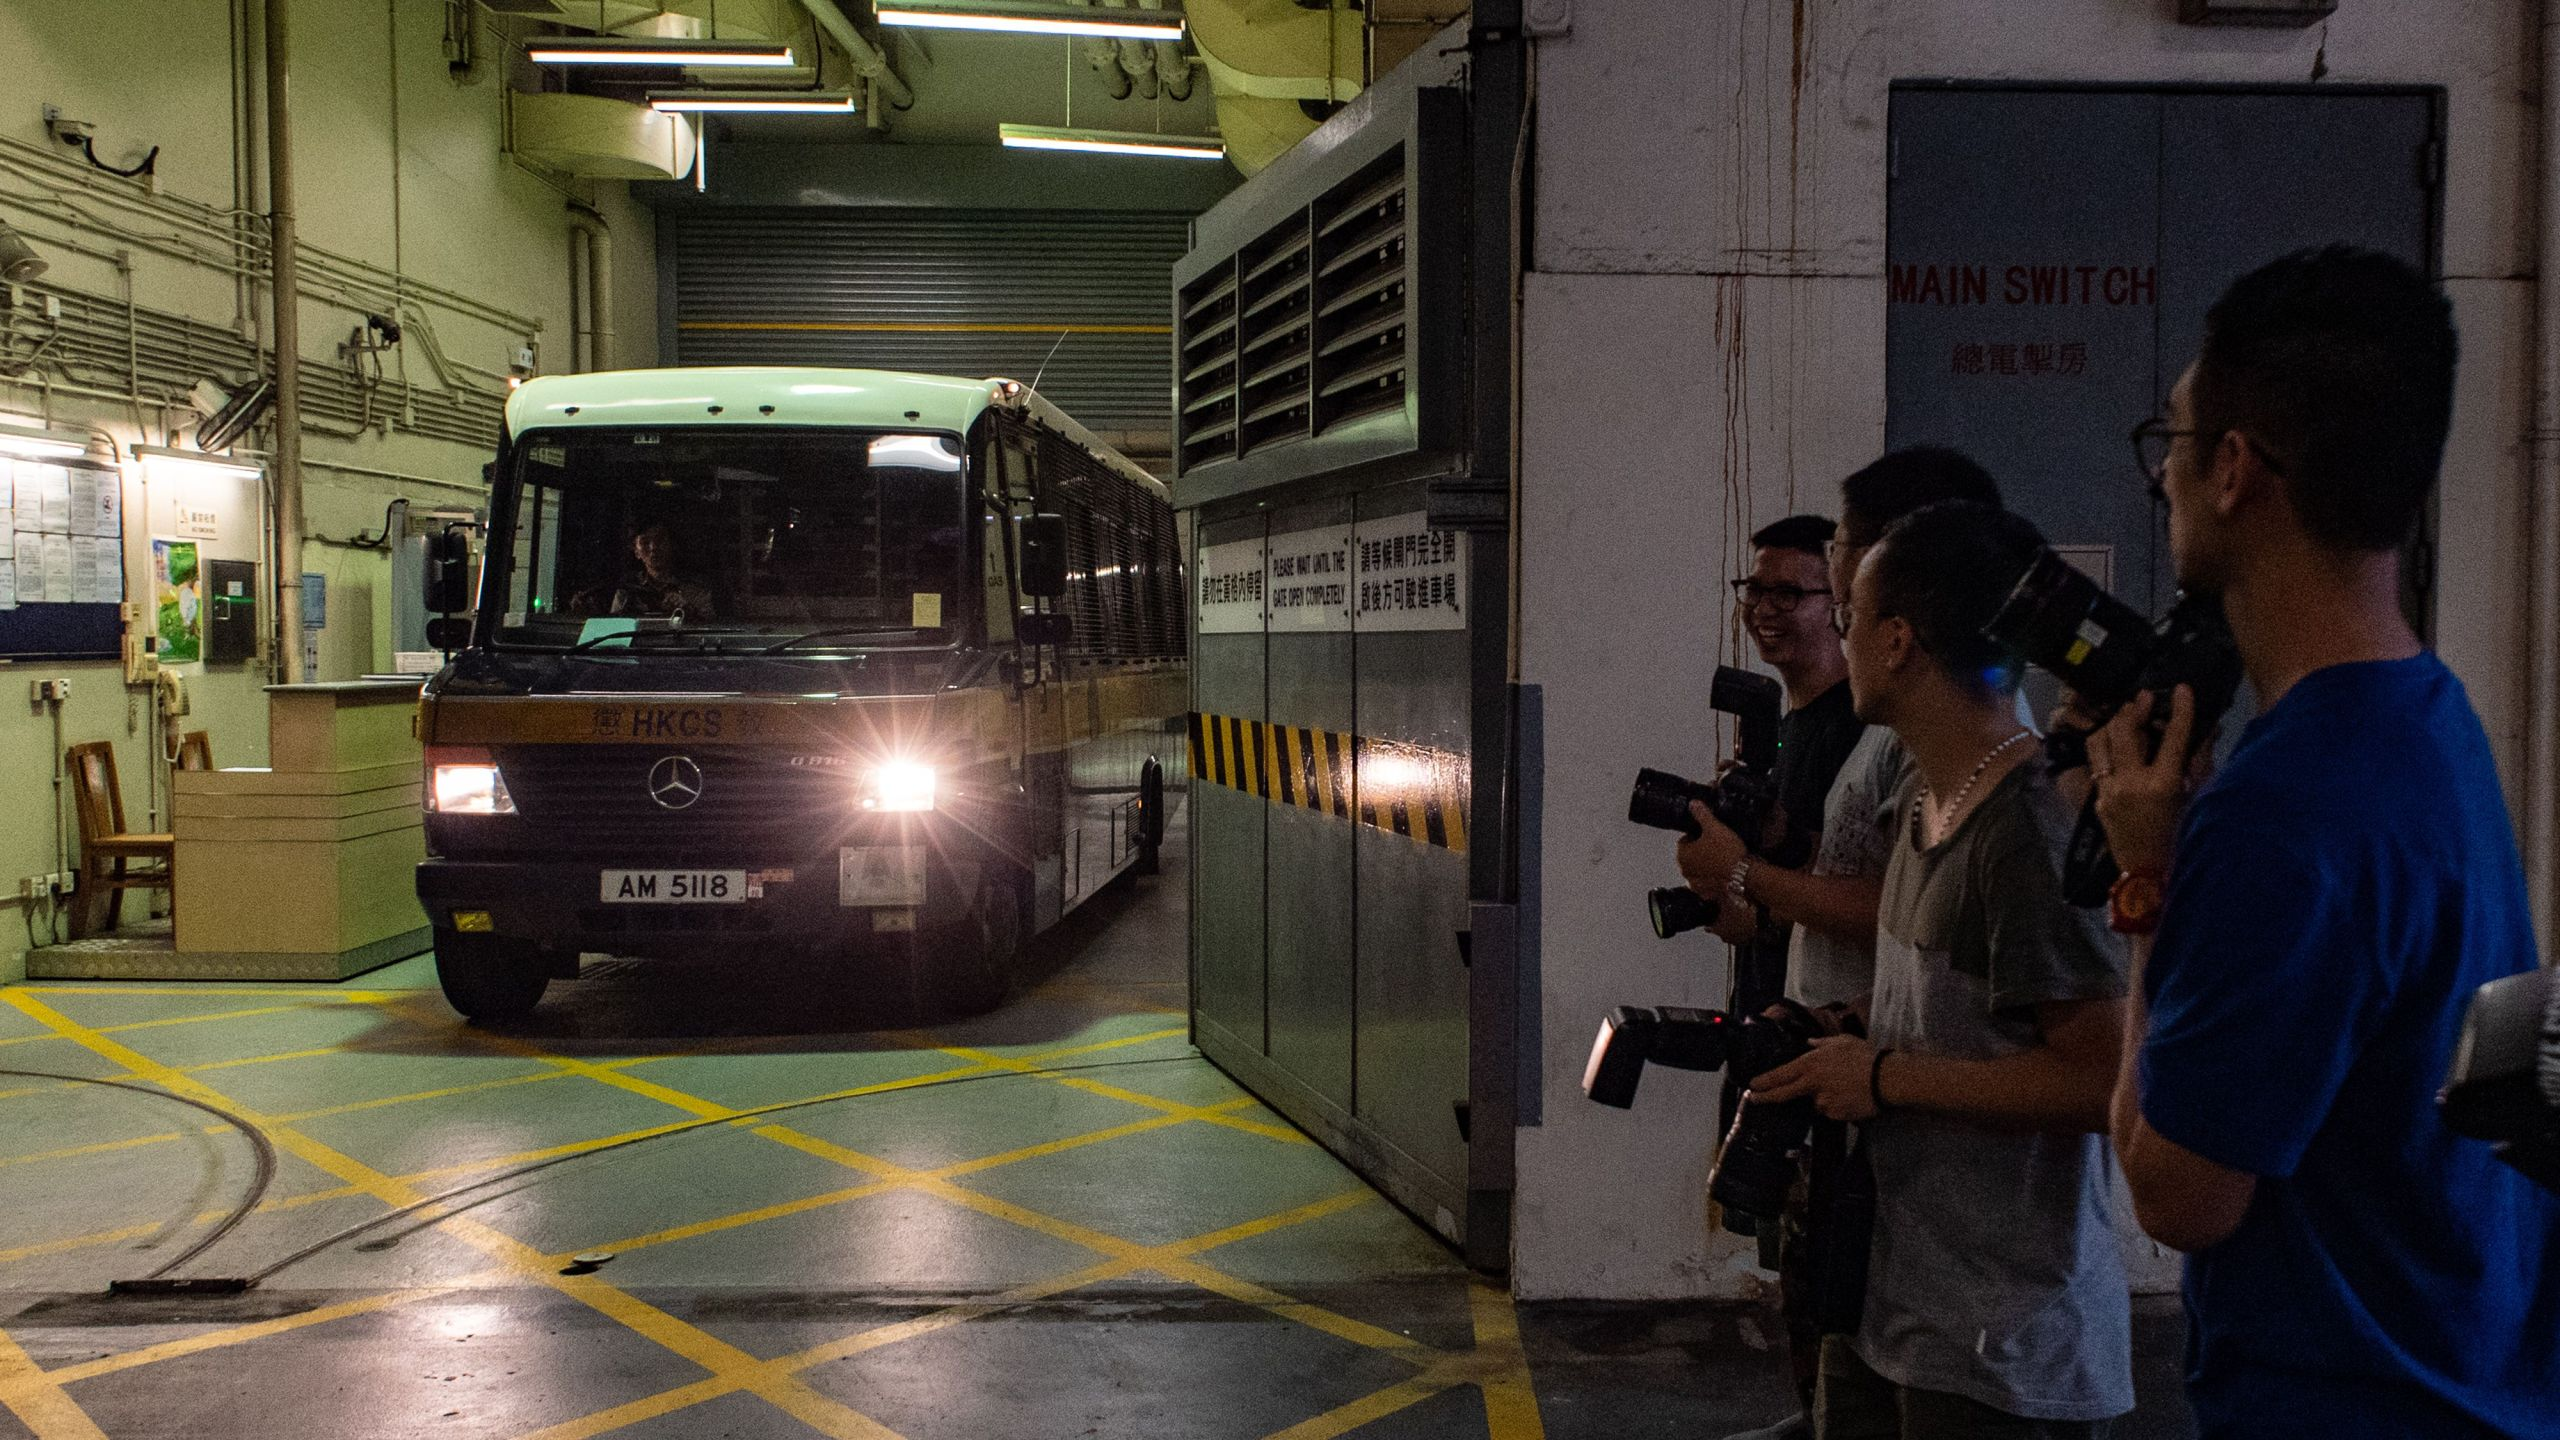 A prison van transporting Malaysian national Khaw Kim-sun, 53, who is accused of killing his wife and daughter, leaves the High Court in Hong Kong on August 23, 2018. (Credit: PHILIP FONG/AFP/Getty Images)